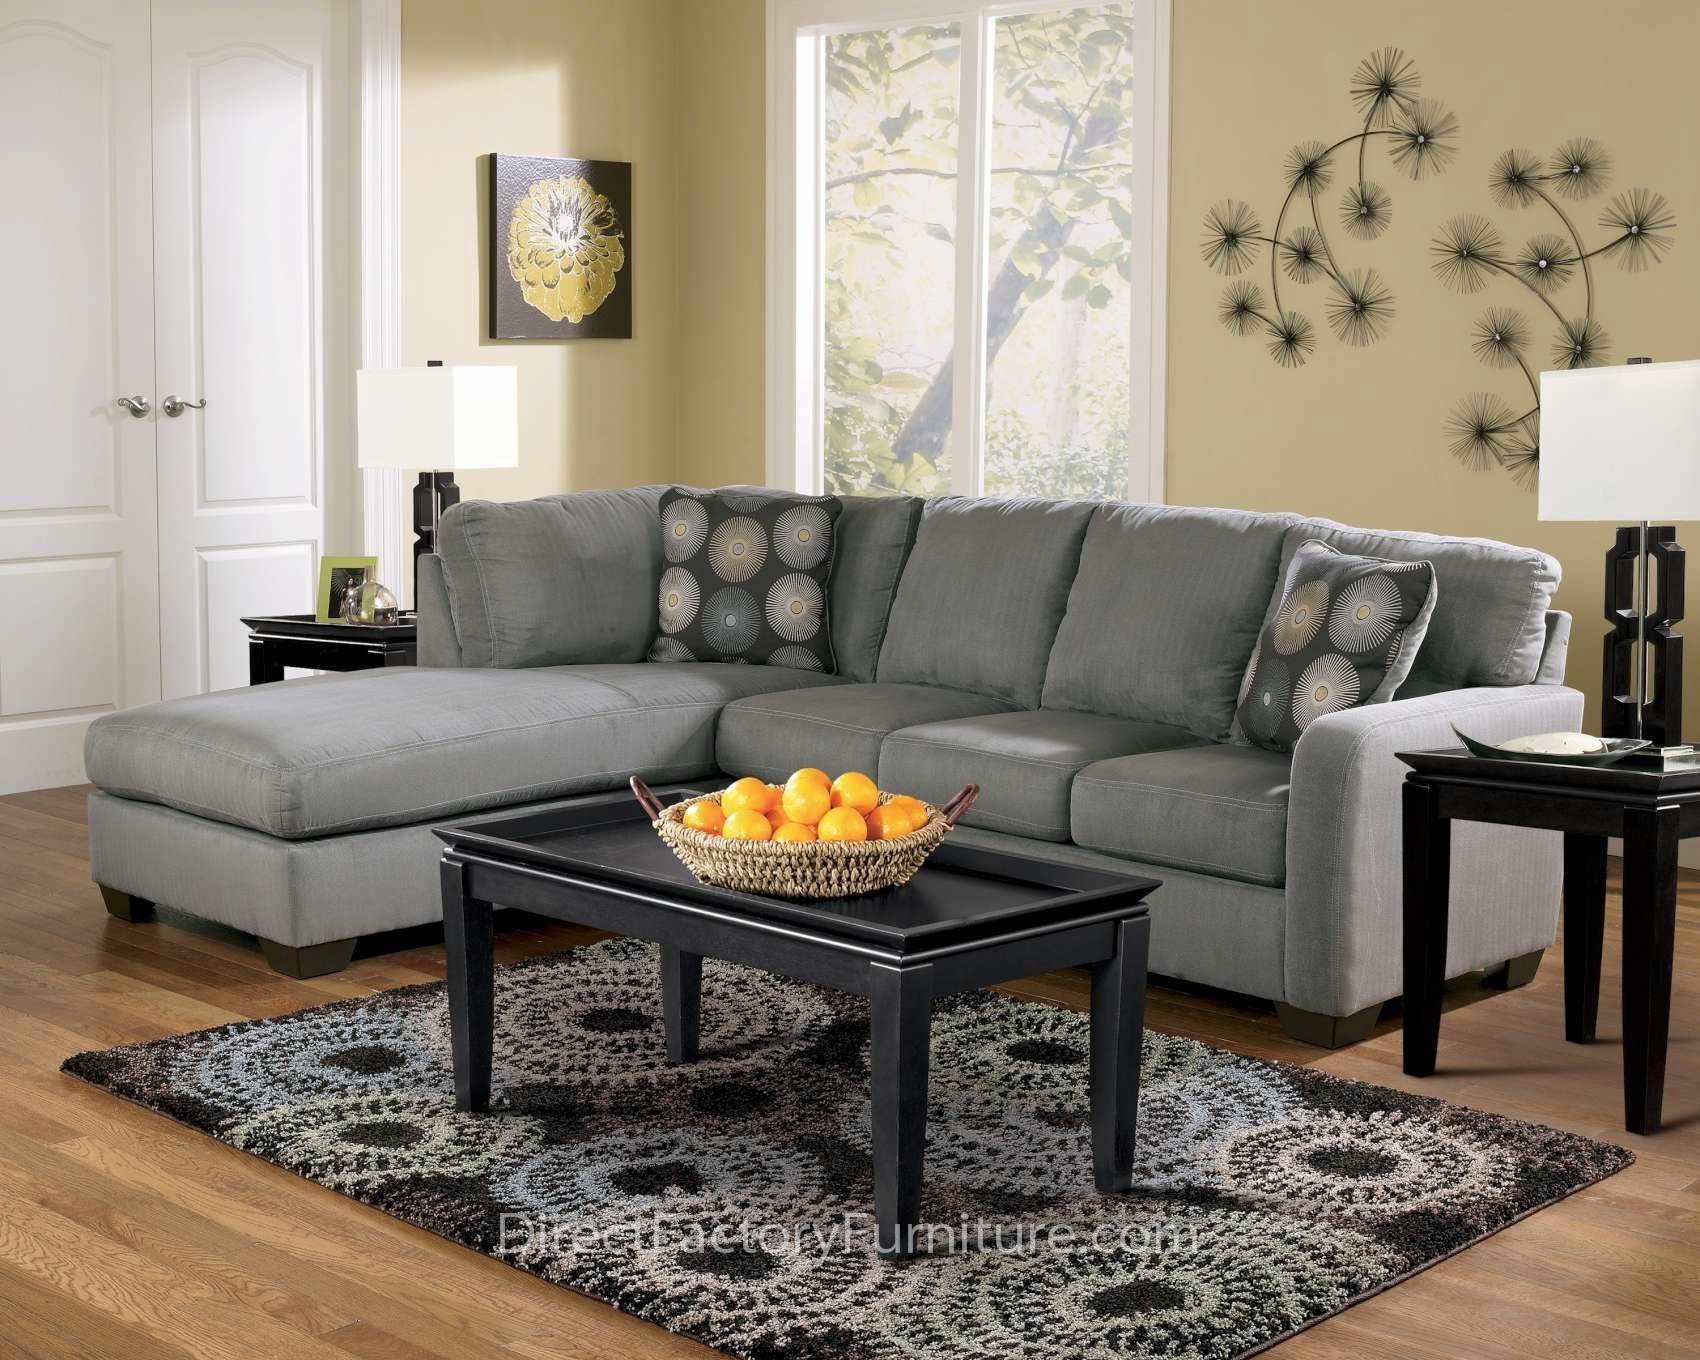 Interior: Luxury Oversized Sectional Sofa For Awesome Living Room intended for Coffee Table for Sectional Sofa With Chaise (Image 19 of 30)